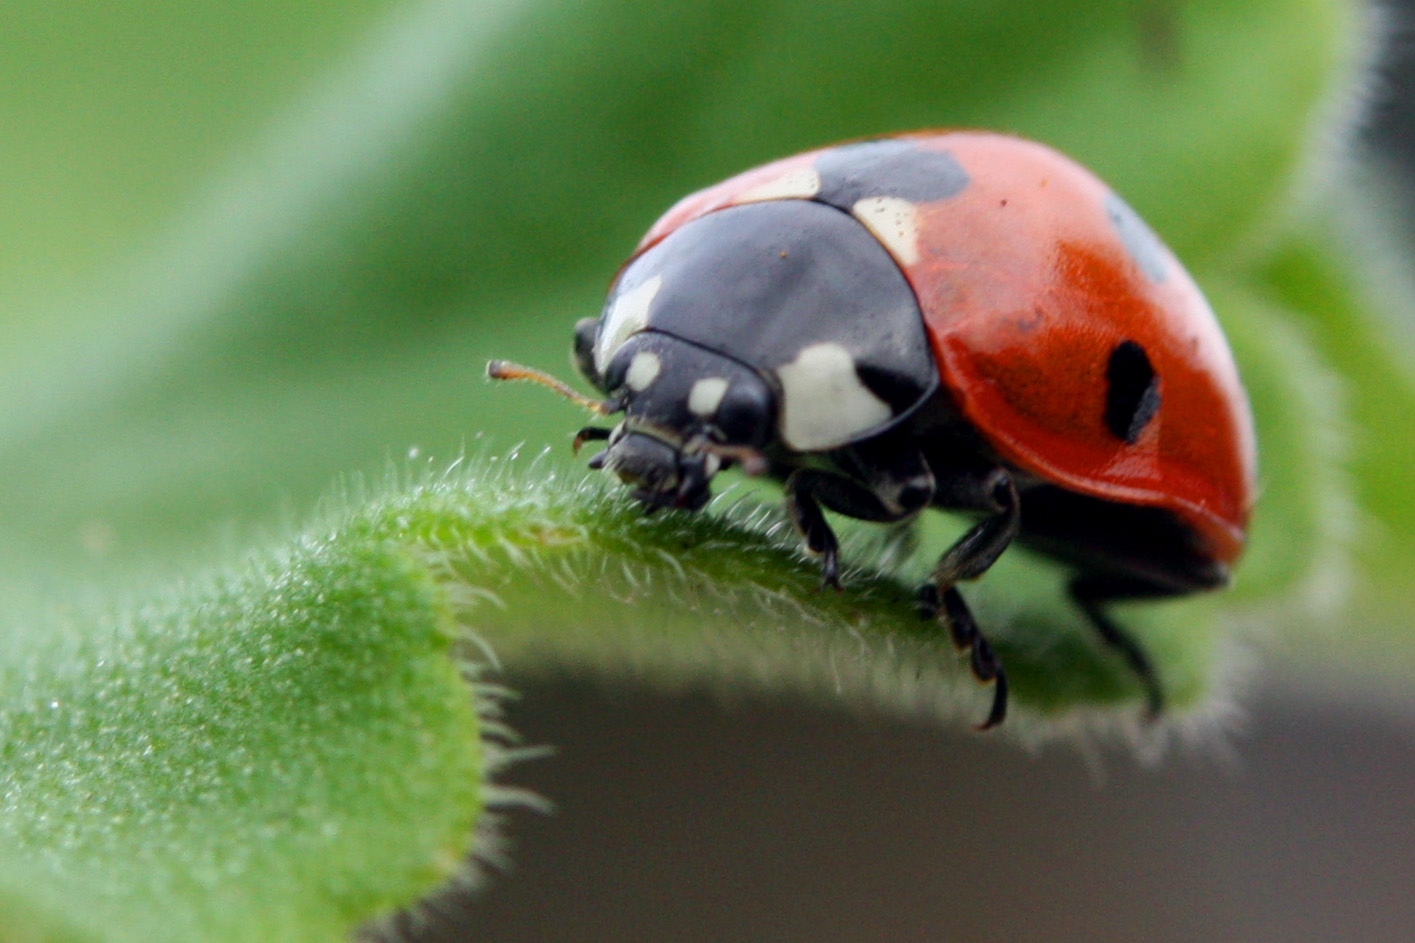 Lady Bug: Photo courtesy of Charlesjsharp